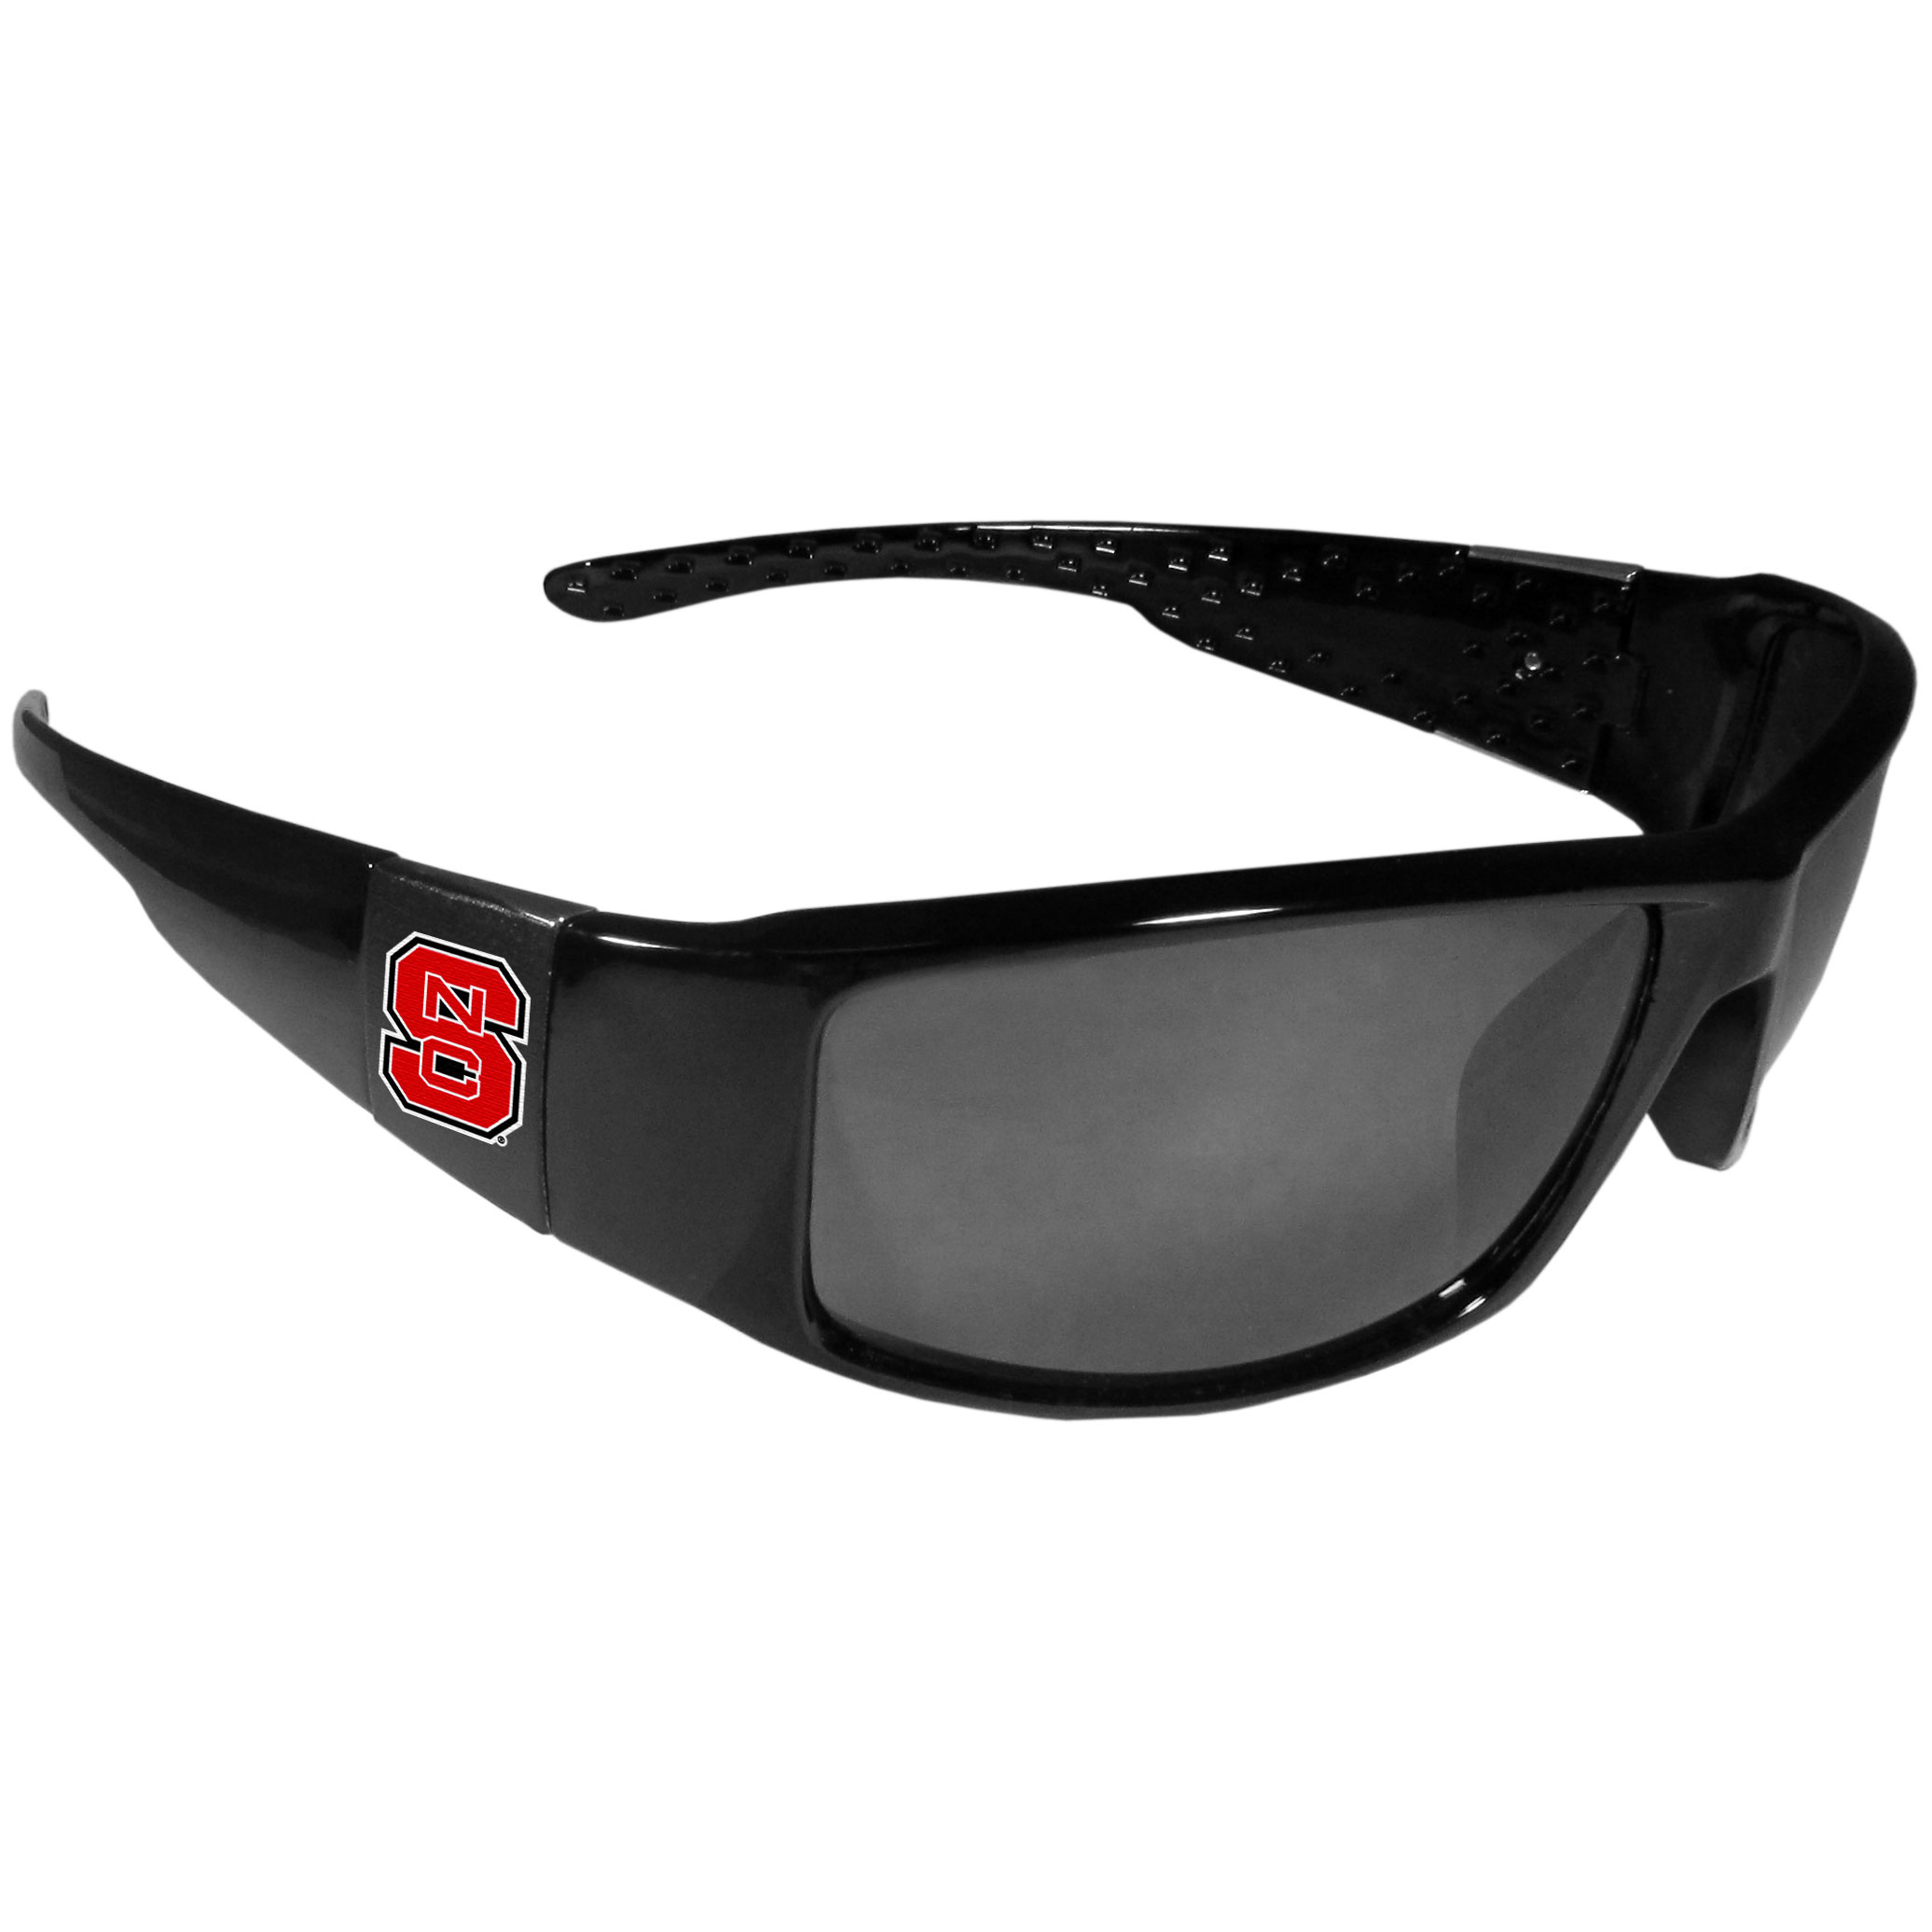 N. Carolina St. Wolfpack Black Wrap Sunglasses - These designer inspired frames have a sleek look in all black with  N. Carolina St. Wolfpack shields on each arm with a printed logo. The shades are perfect for any outdoor activity like; golfing, driving, hiking, fishing or cheering on the team at a tailgating event or at a home game day BBQ with a lens rating of 100% UVA/UVB for maximum UV protection. The high-quality frames are as durable as they are fashionable and with their classic look they are the perfect fan accessory that can be worn everyday for every occasion.